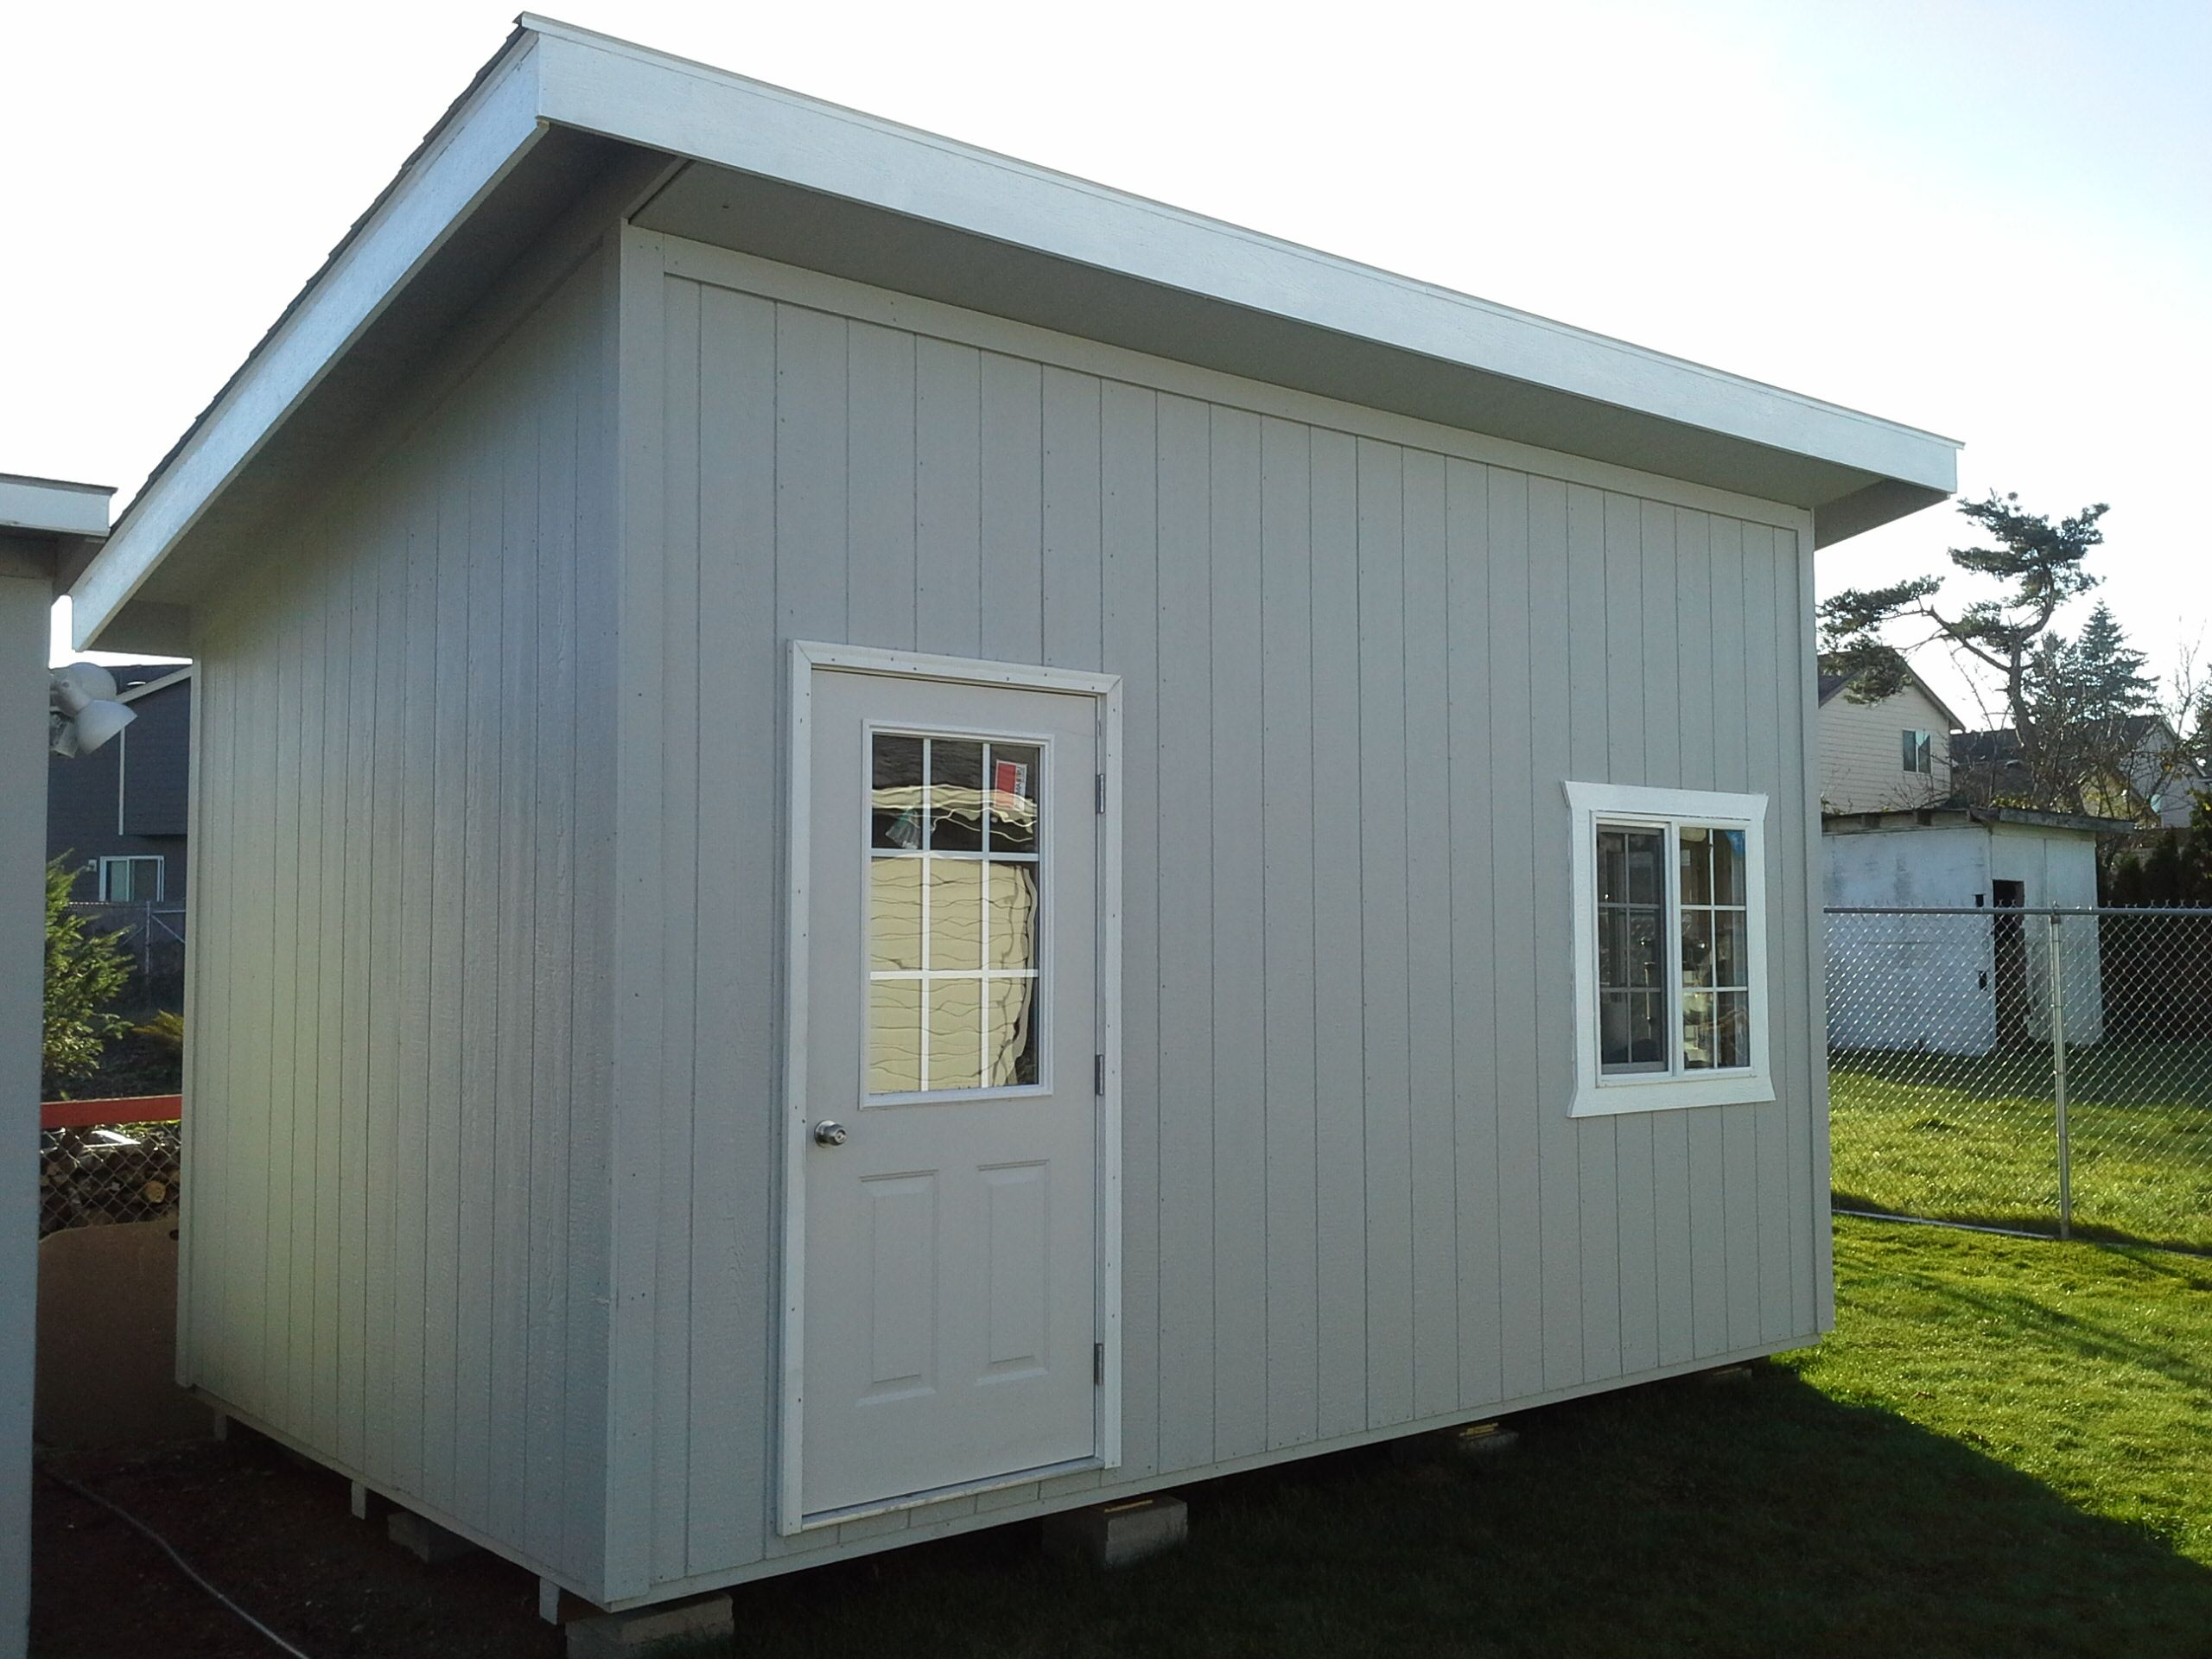 Slant Roof Style. Storage, Garden Shed, Tool Shed, Playhouse, Craft Room